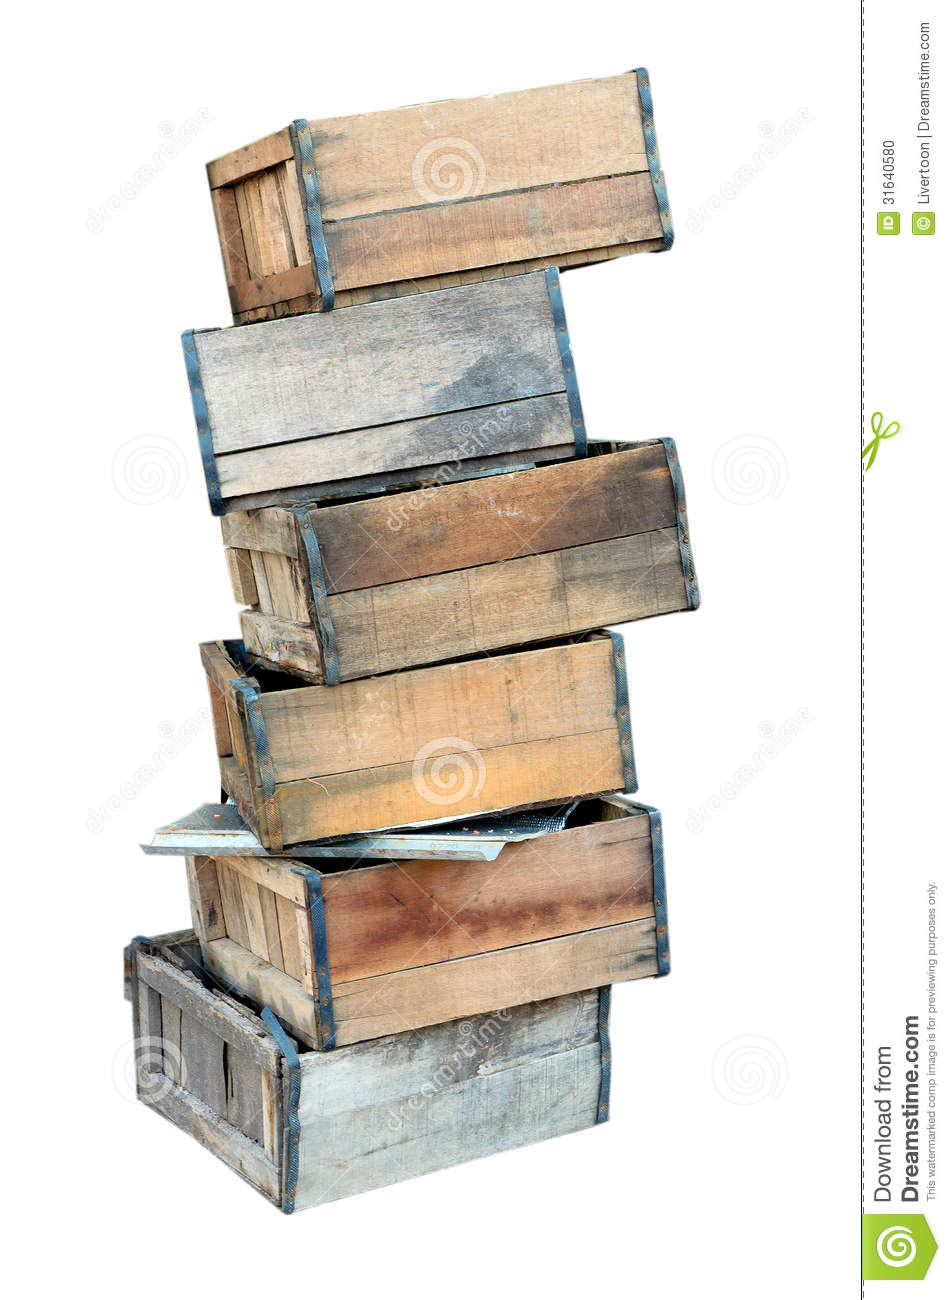 Stacked Old Wooden Crates Stock Photo Image 31640580